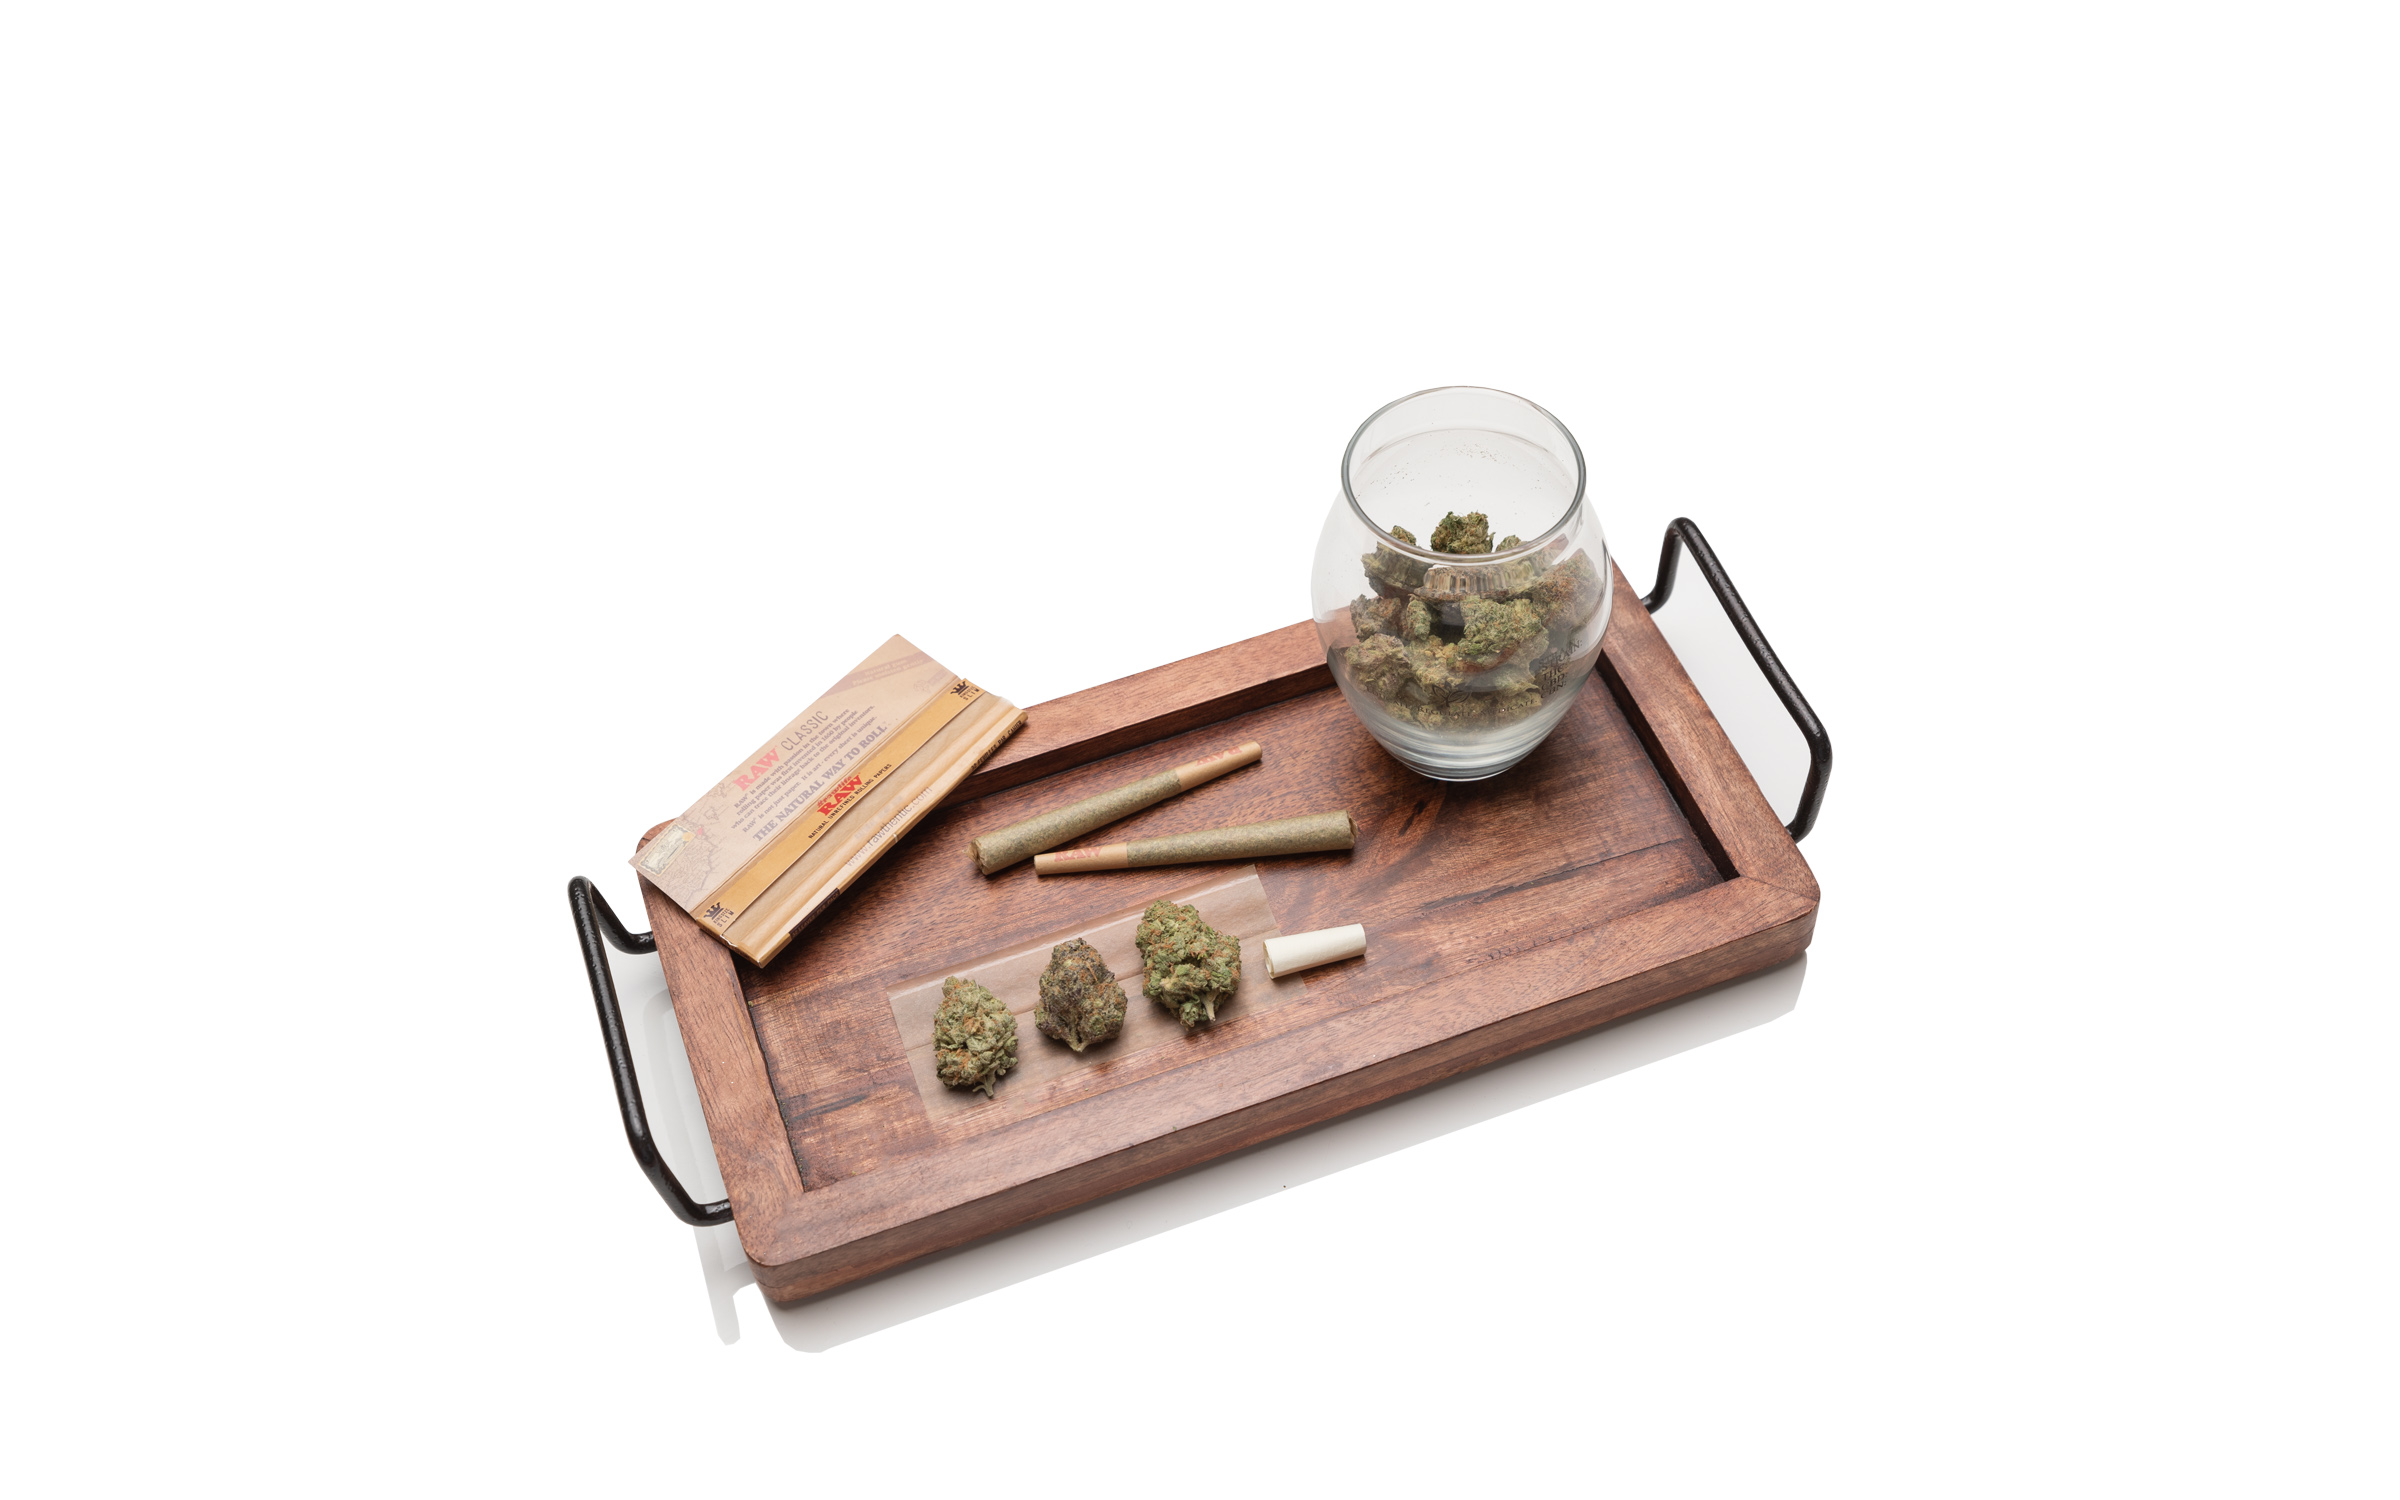 Eleventh day of Christmas at Health For Life Arizona Dispensaries